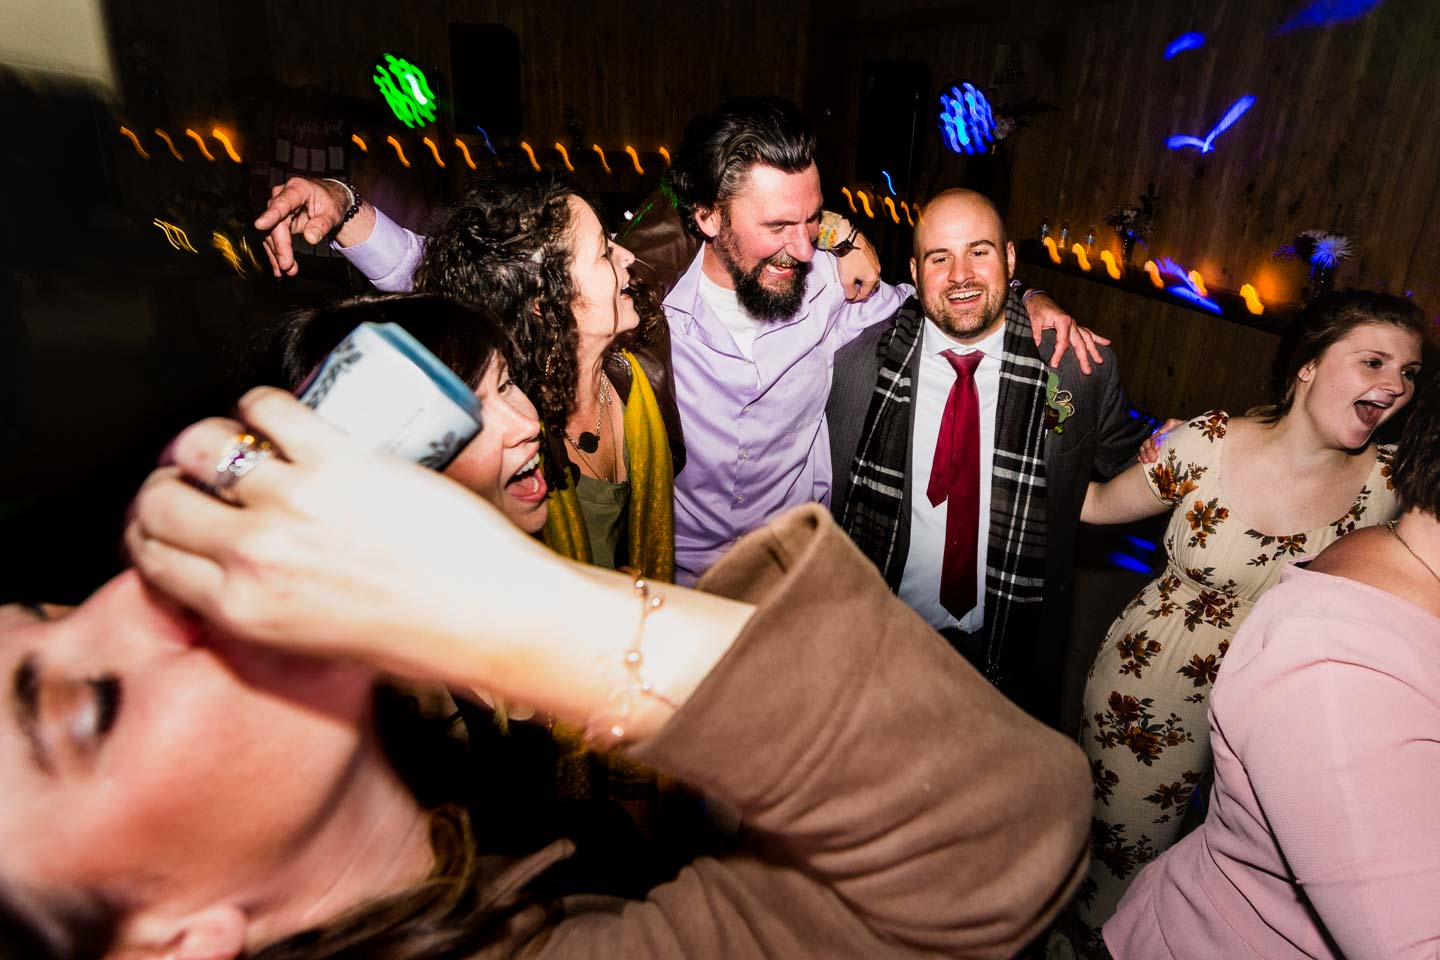 candid picture of guests dancing wildly at a wedding reception